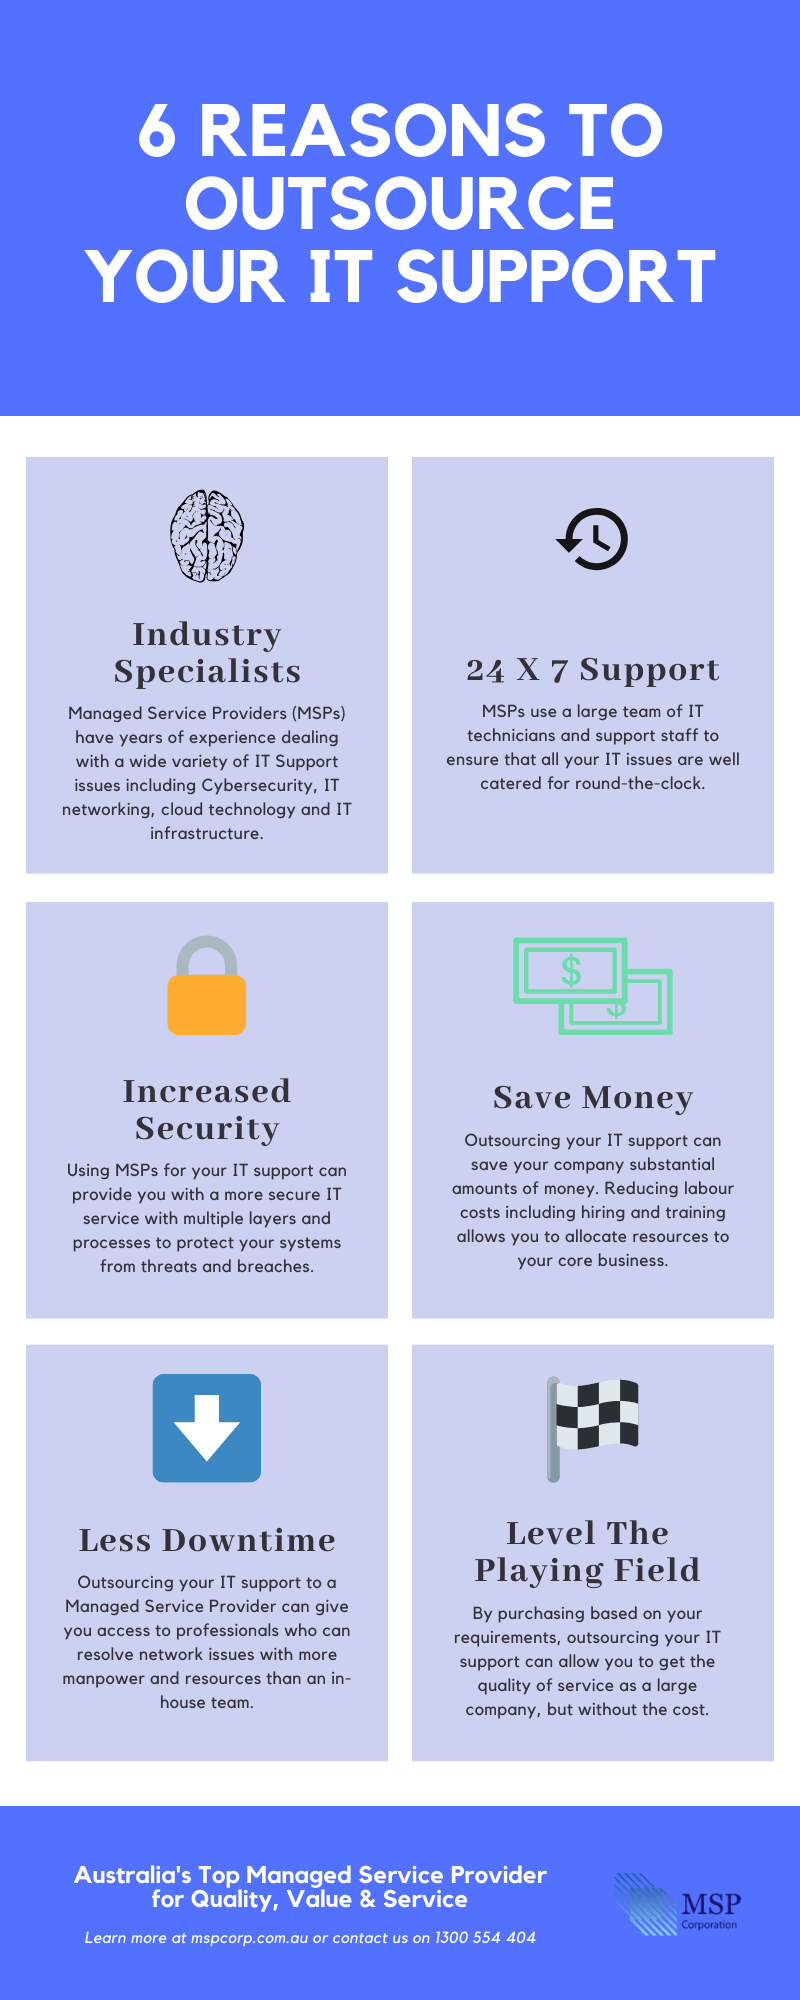 Infographic describing reasons to outsource your IT Support to a Managed Service Provider